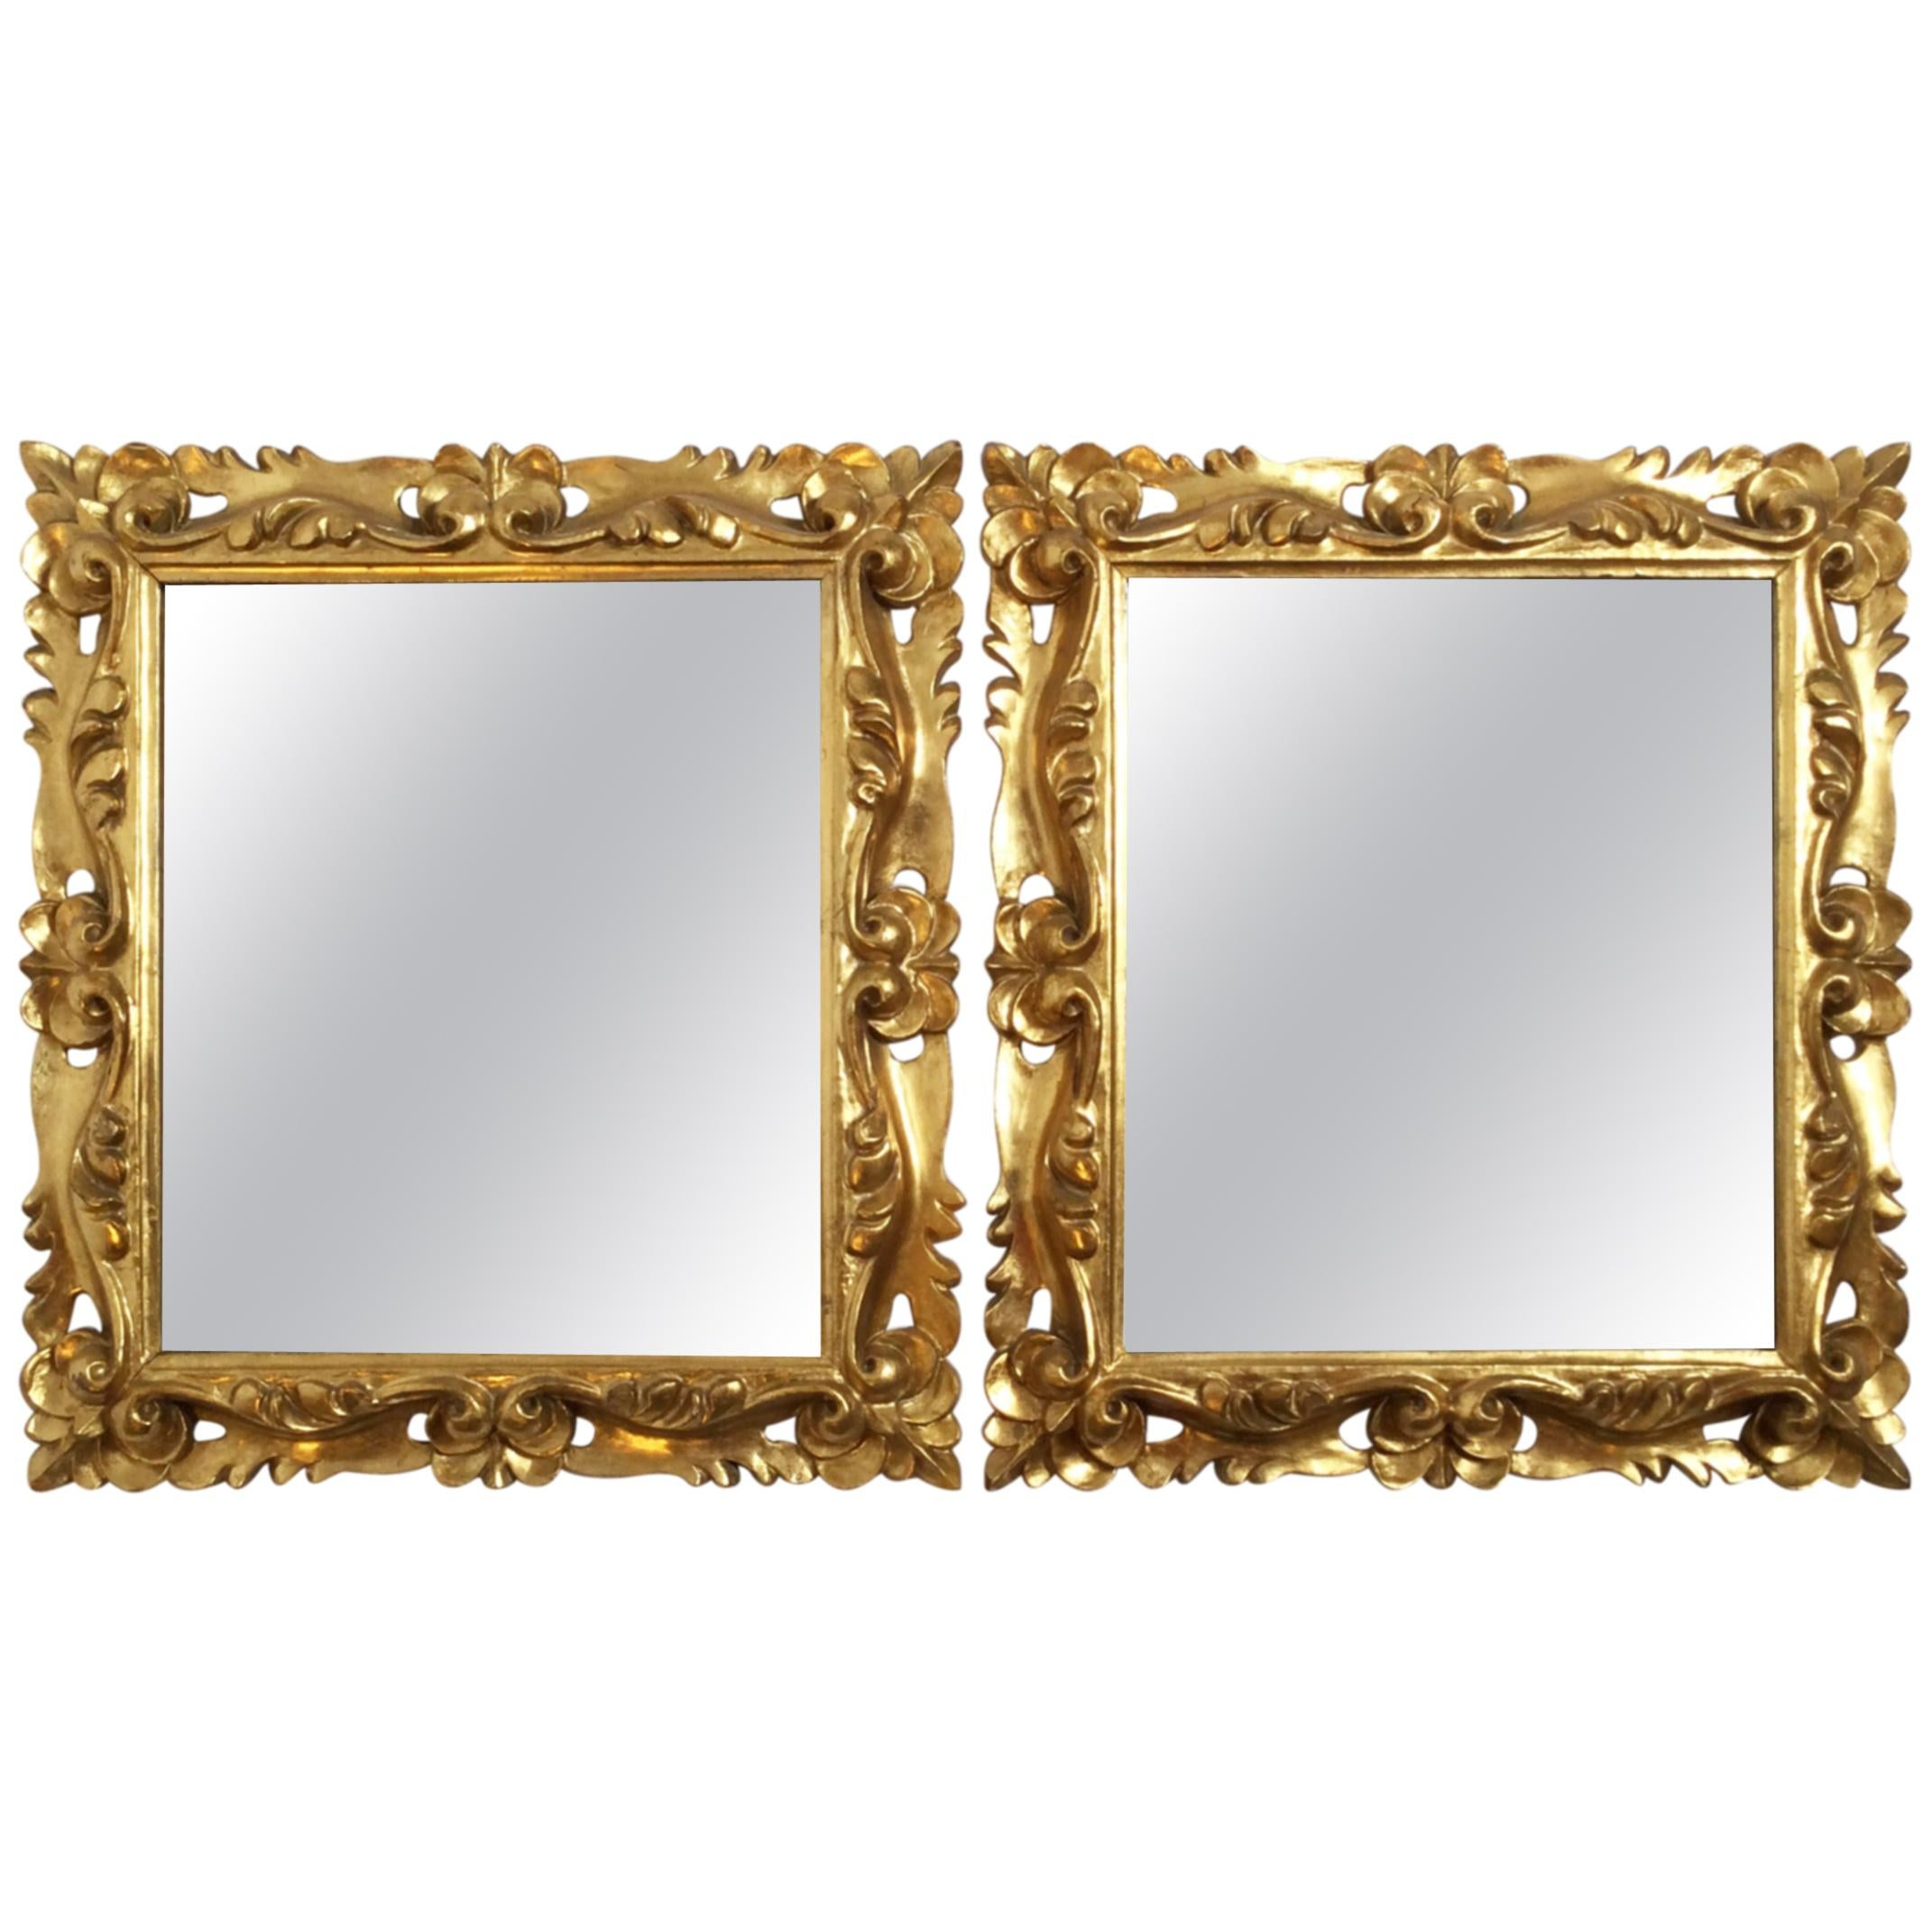 Early 20th Century Pair of Italian Gold Gilt Carved Wood Mirrors